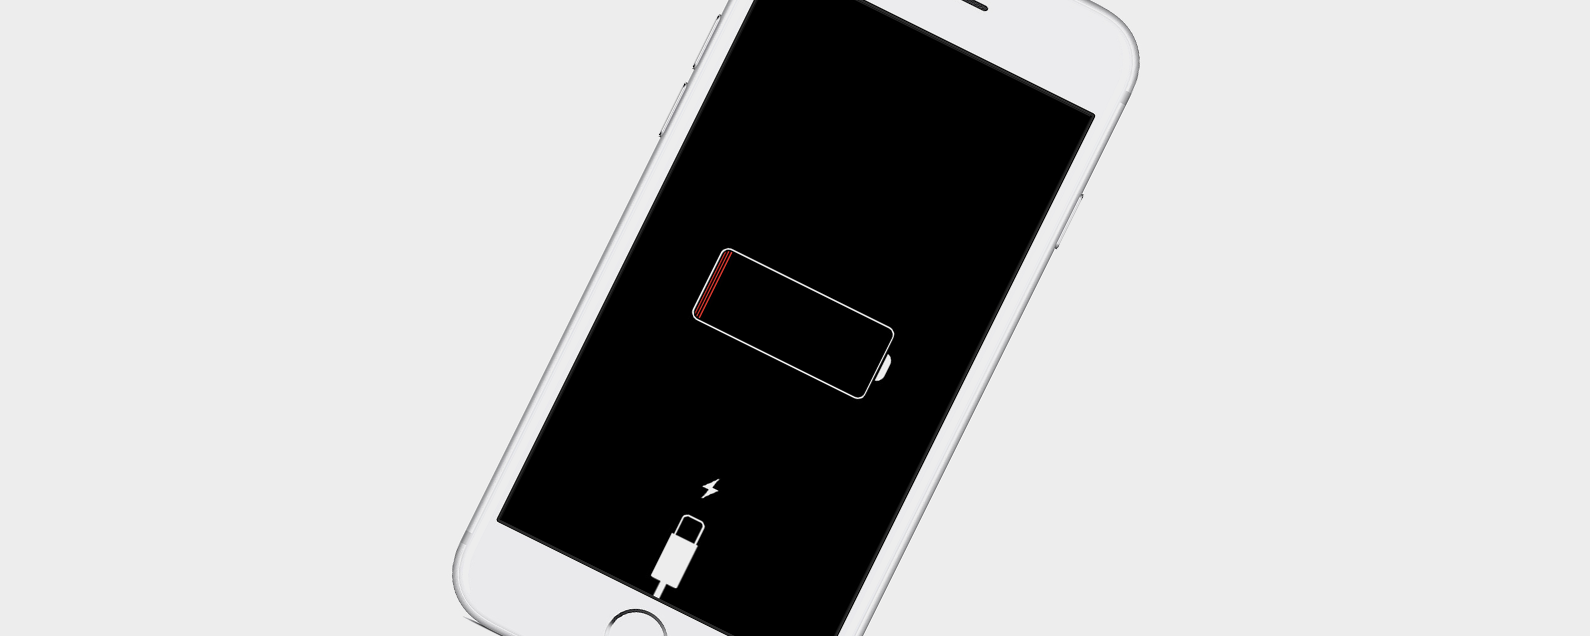 dead iphone wont charge my iphone won t charge troubleshooting tips amp tricks to 13941